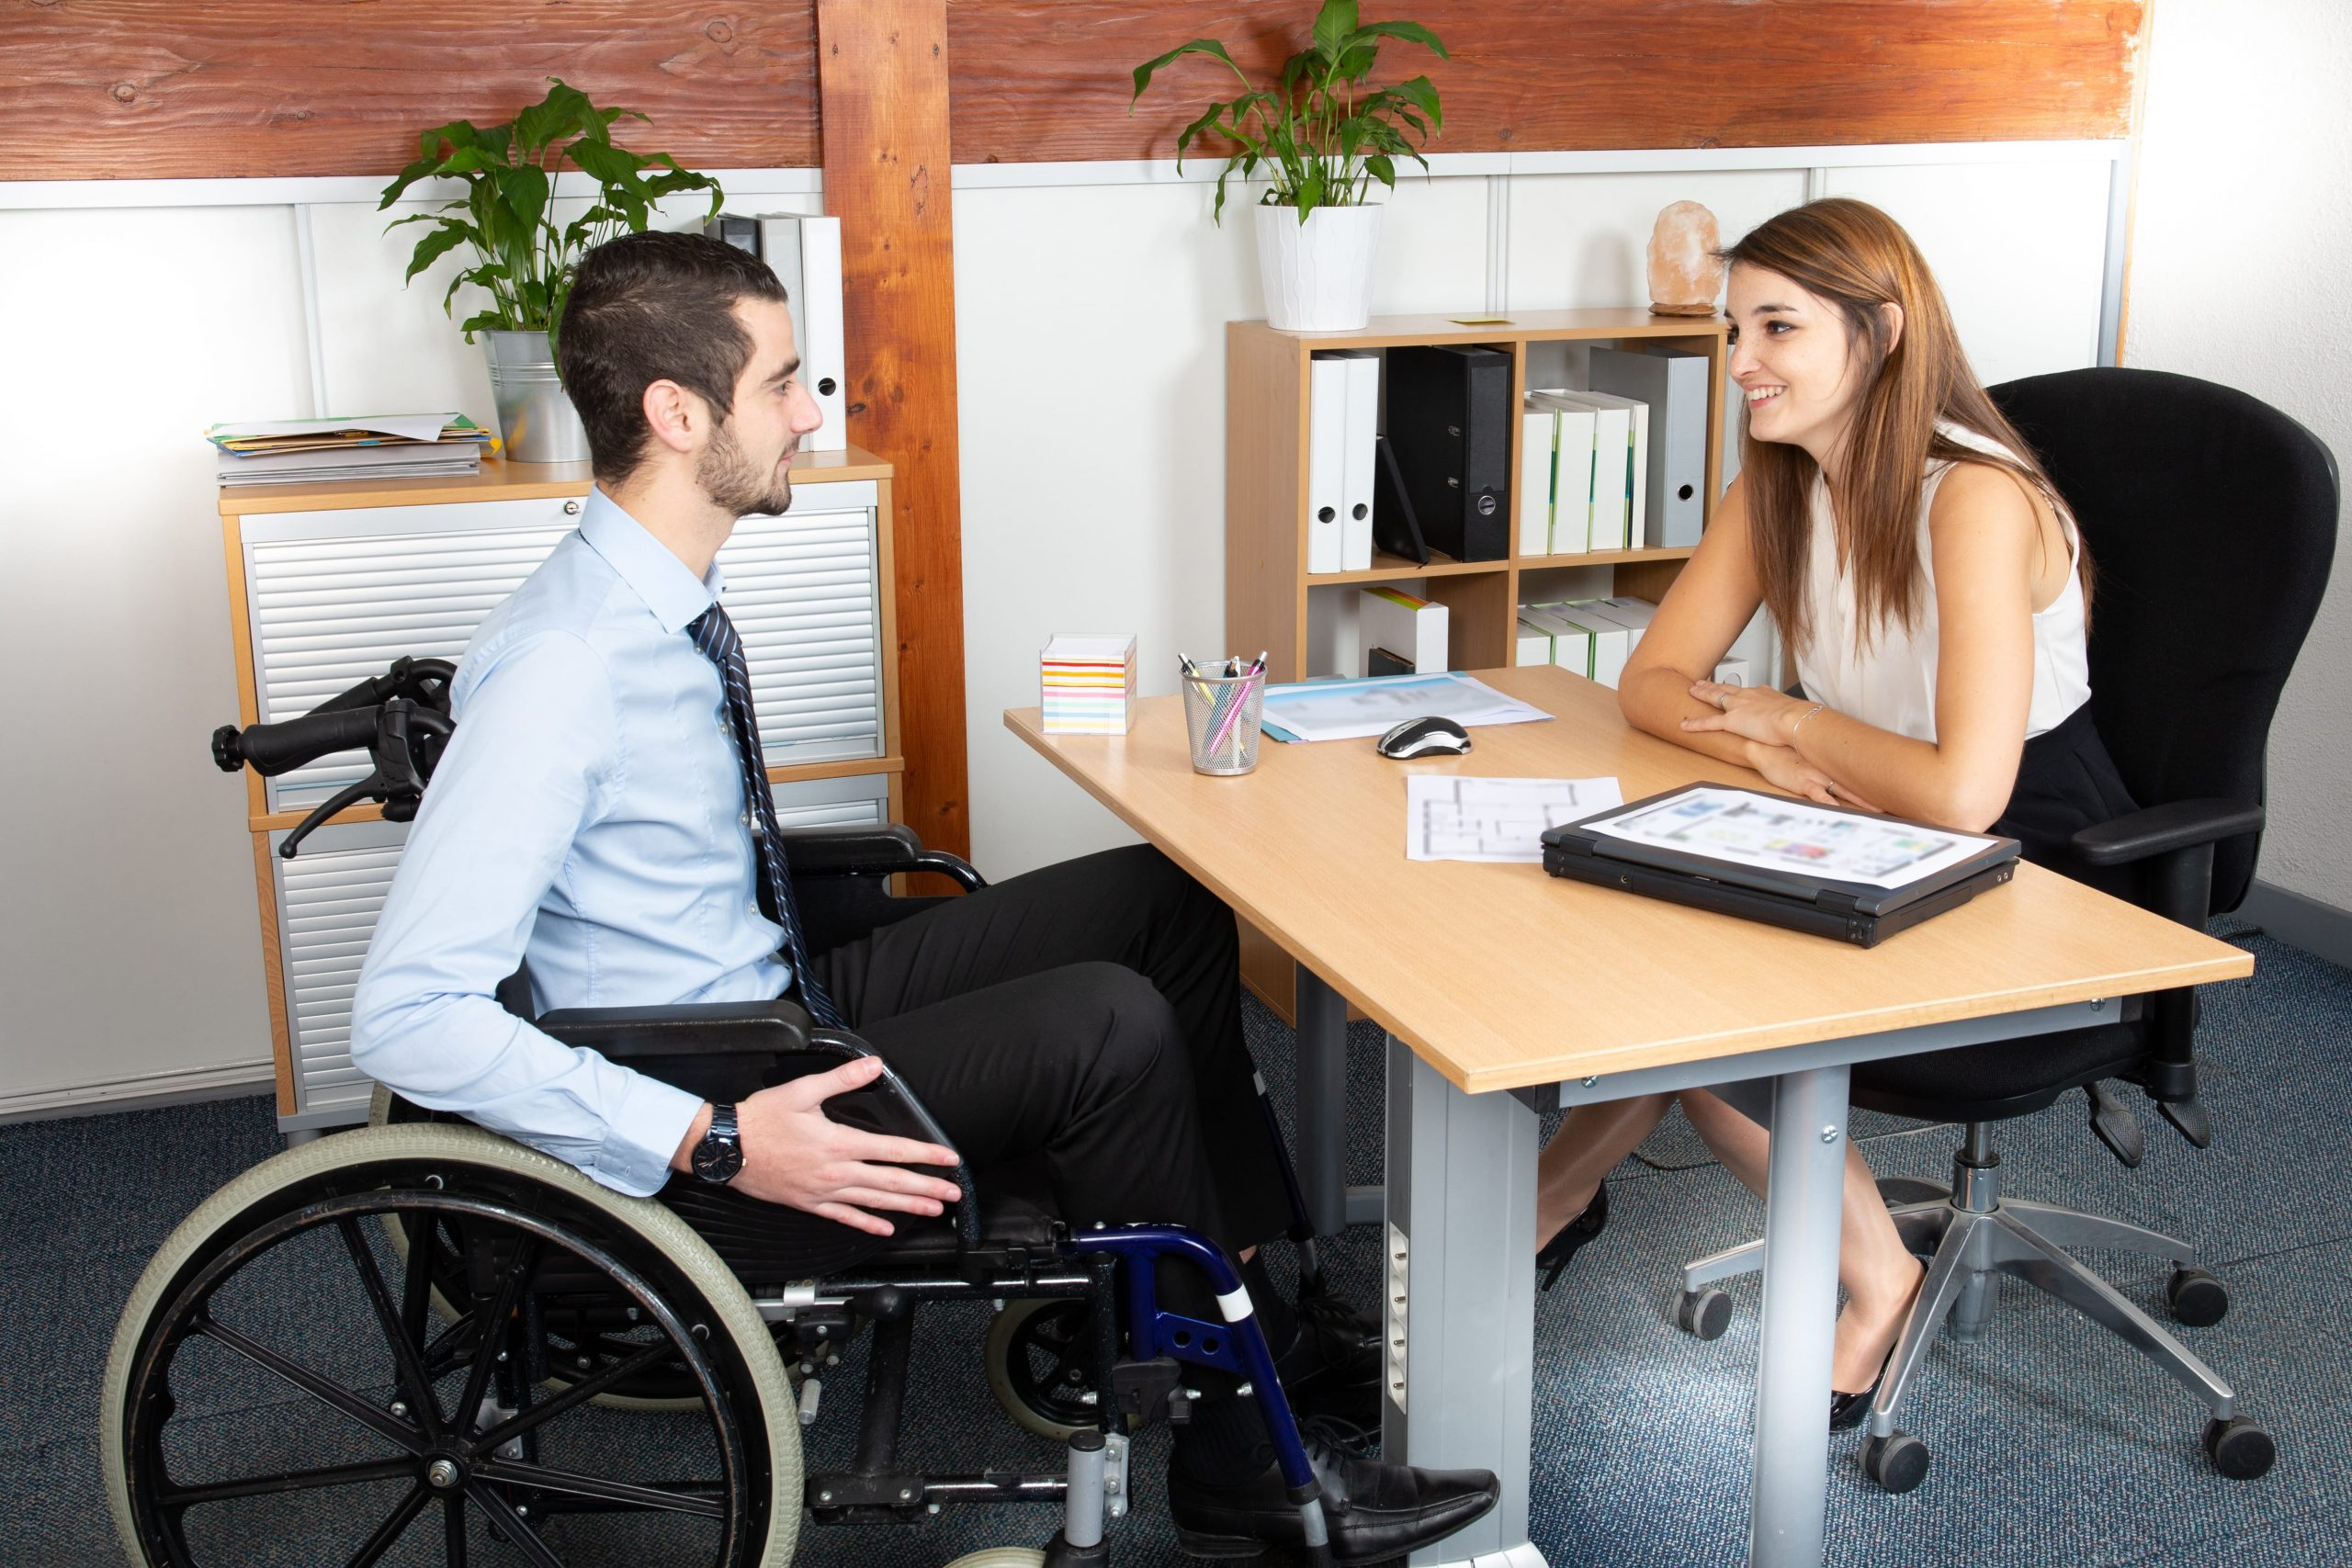 man in wheel chair having a meeting with a woman behind desk.